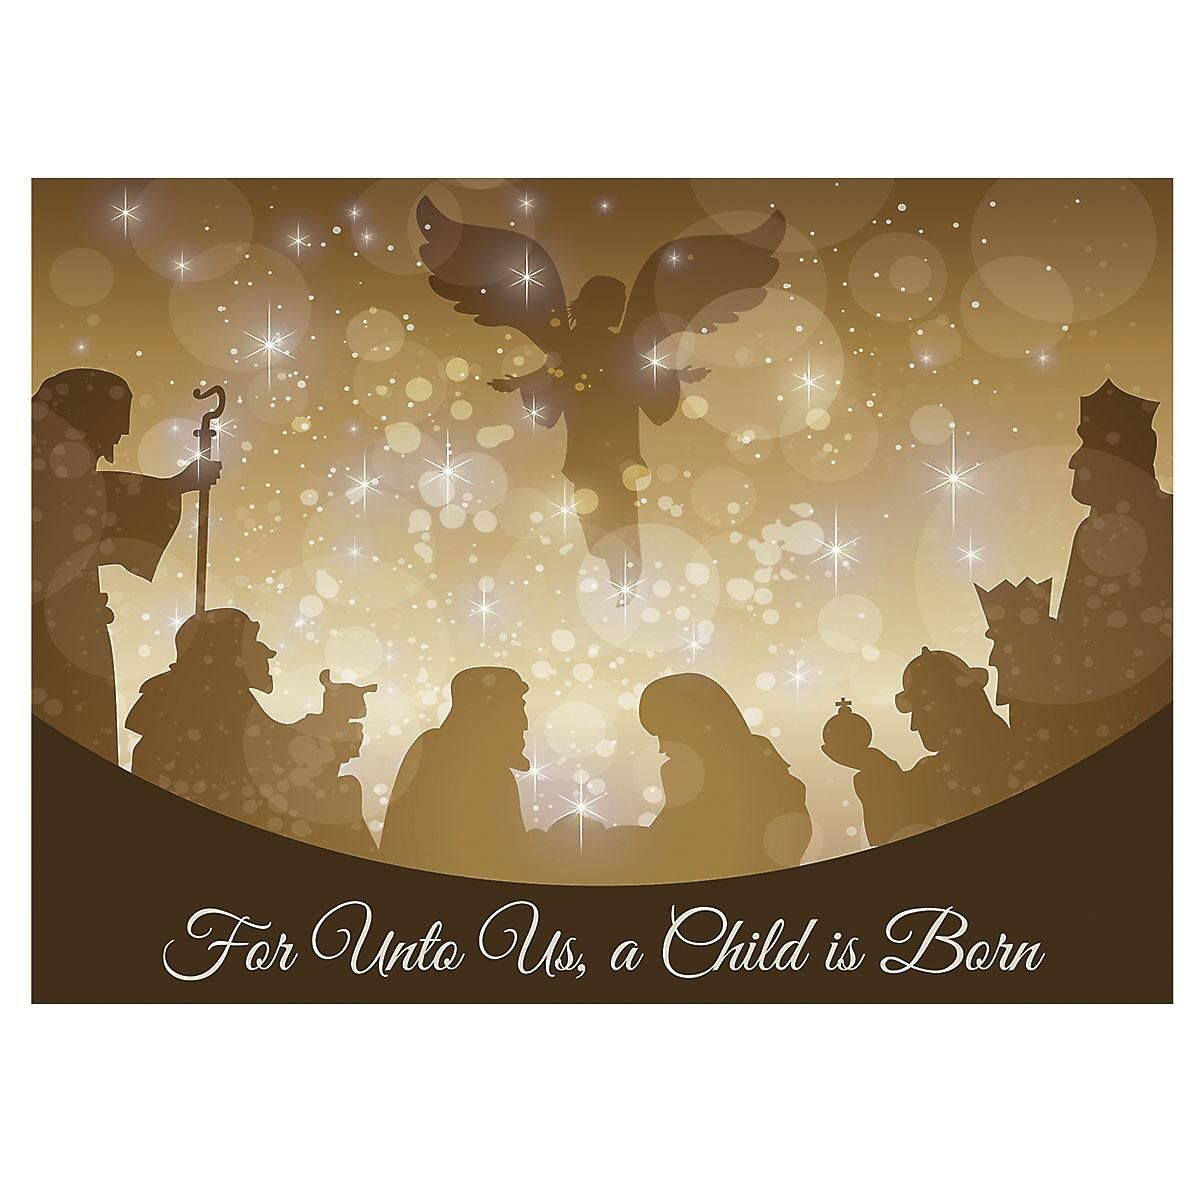 Golden Illumination Christmas Cards - Nonpersonalized